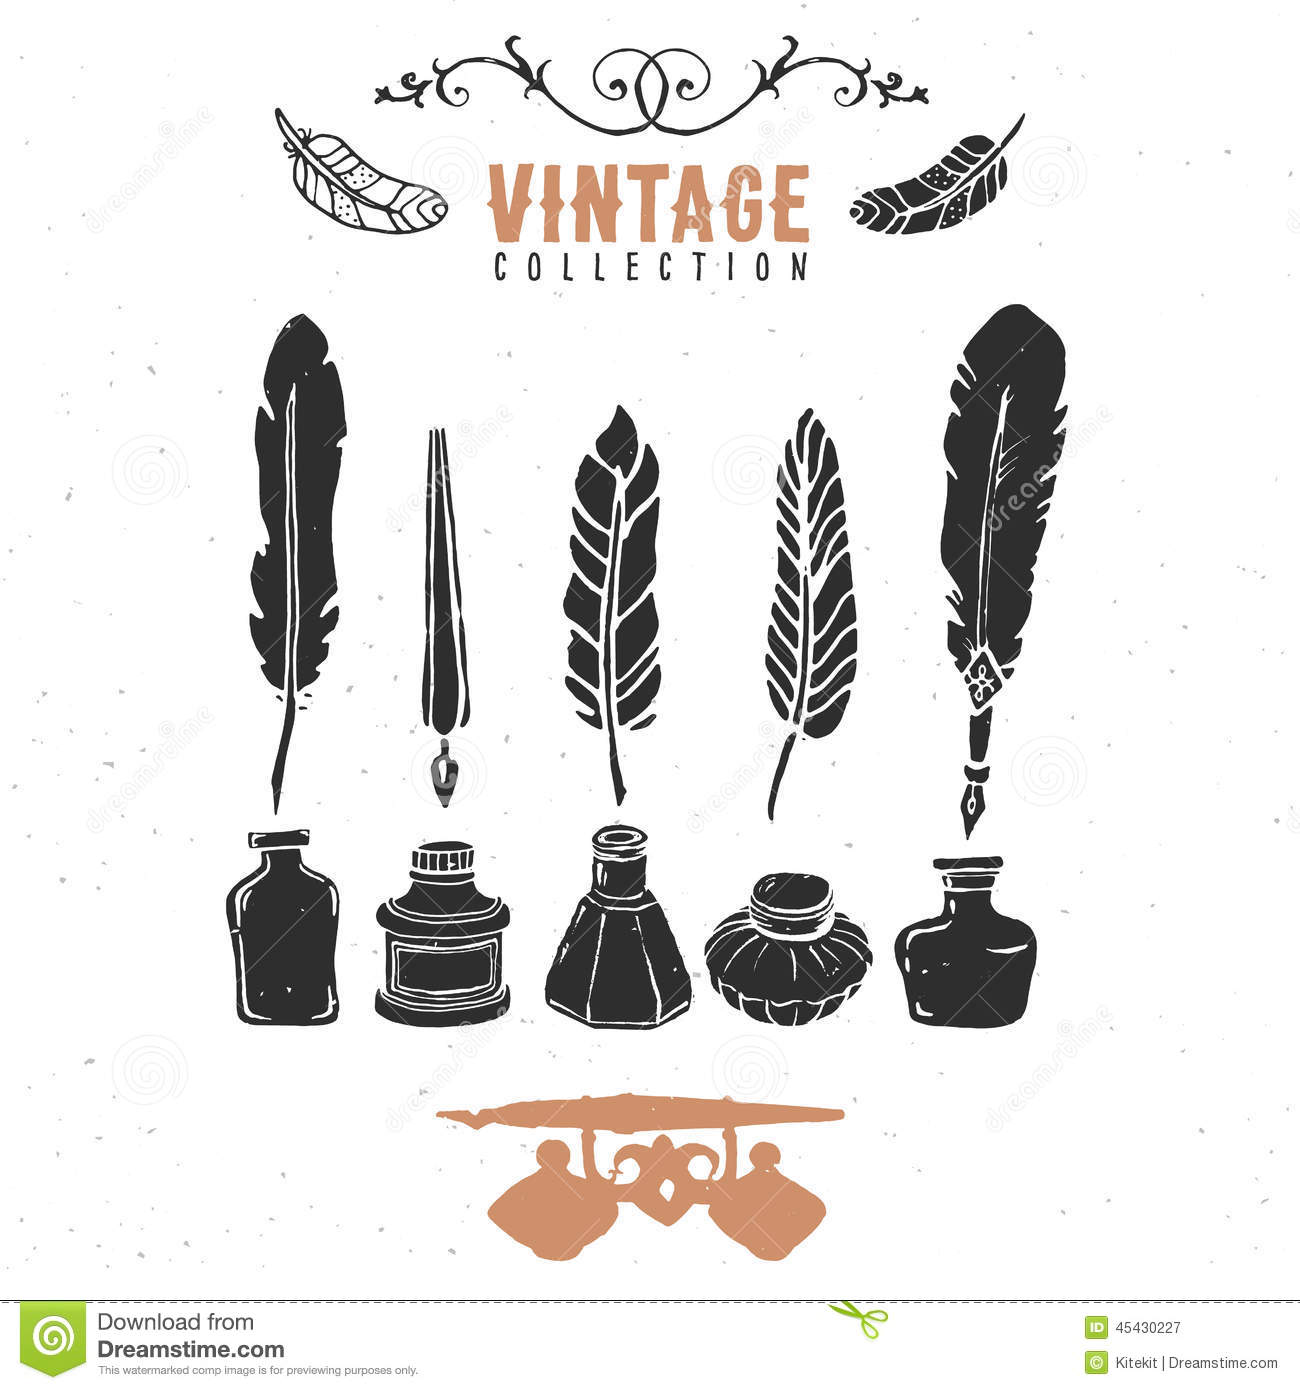 Classic Retro Illustration: Vintage Retro Old Nib Pen Feather Ink Collection. Stock